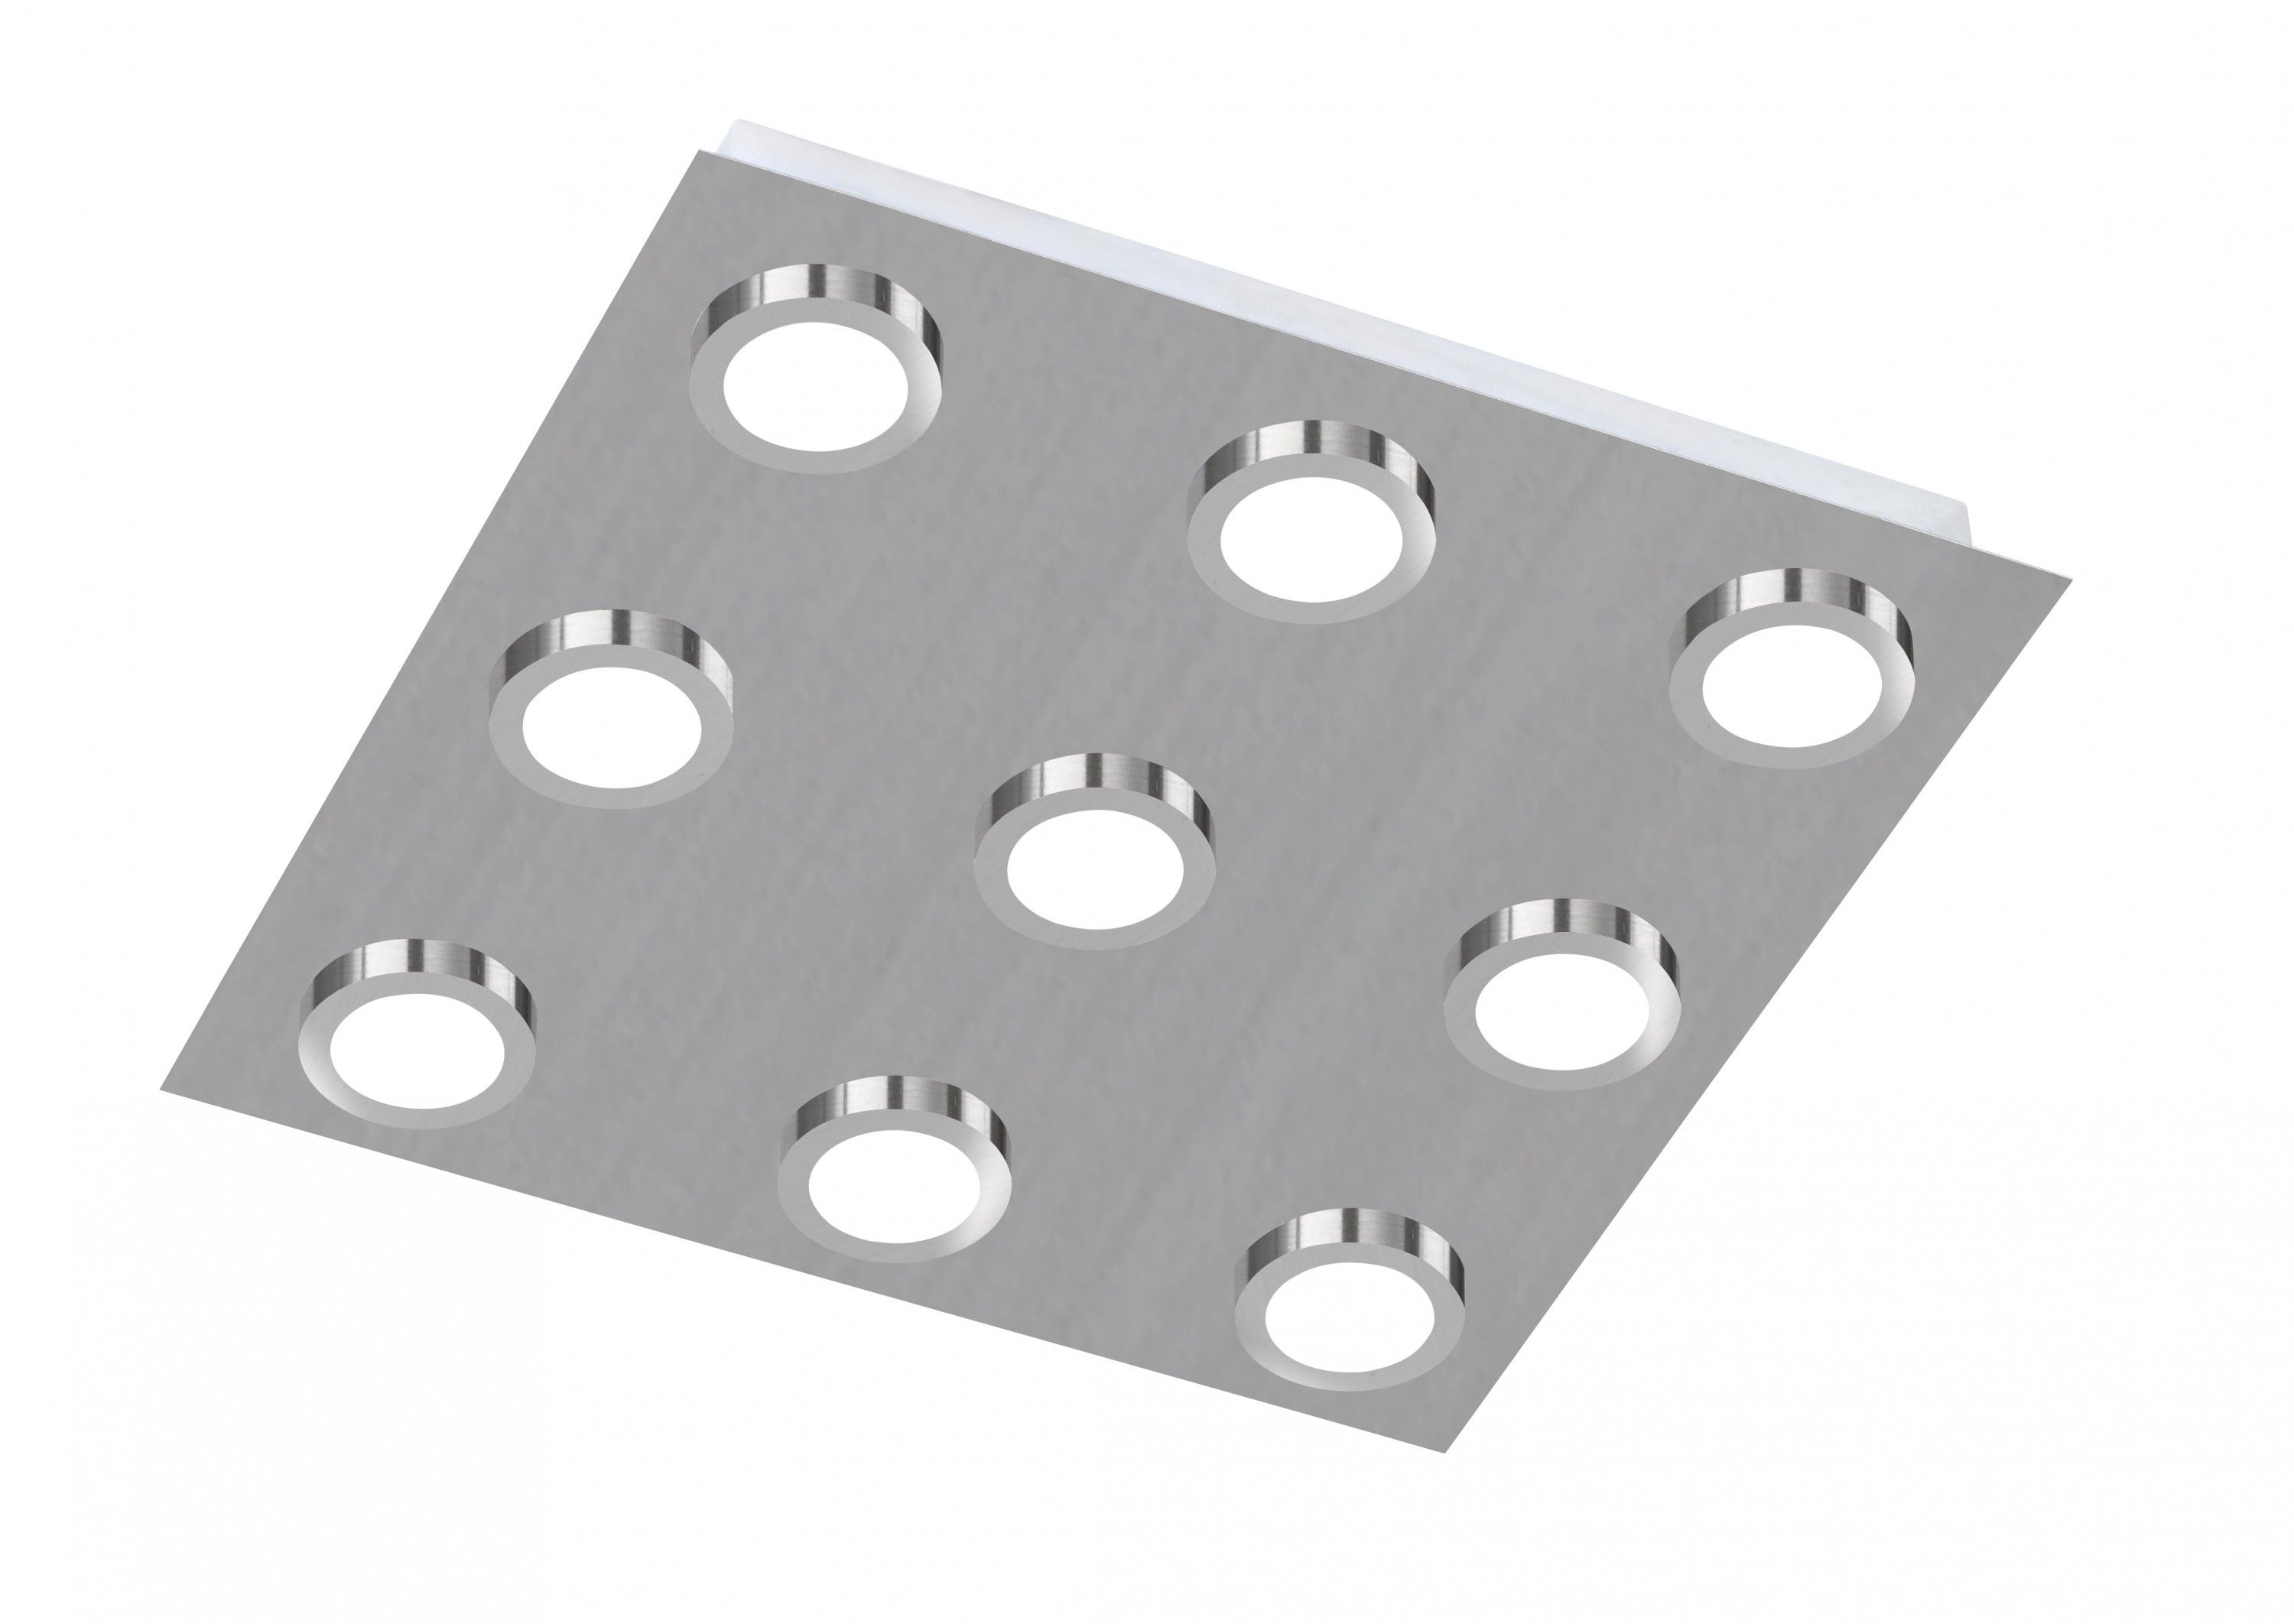 Wofi LED Deckenleuchte Veneta Action 9 flammig Nickel matt Quadratisch Design In